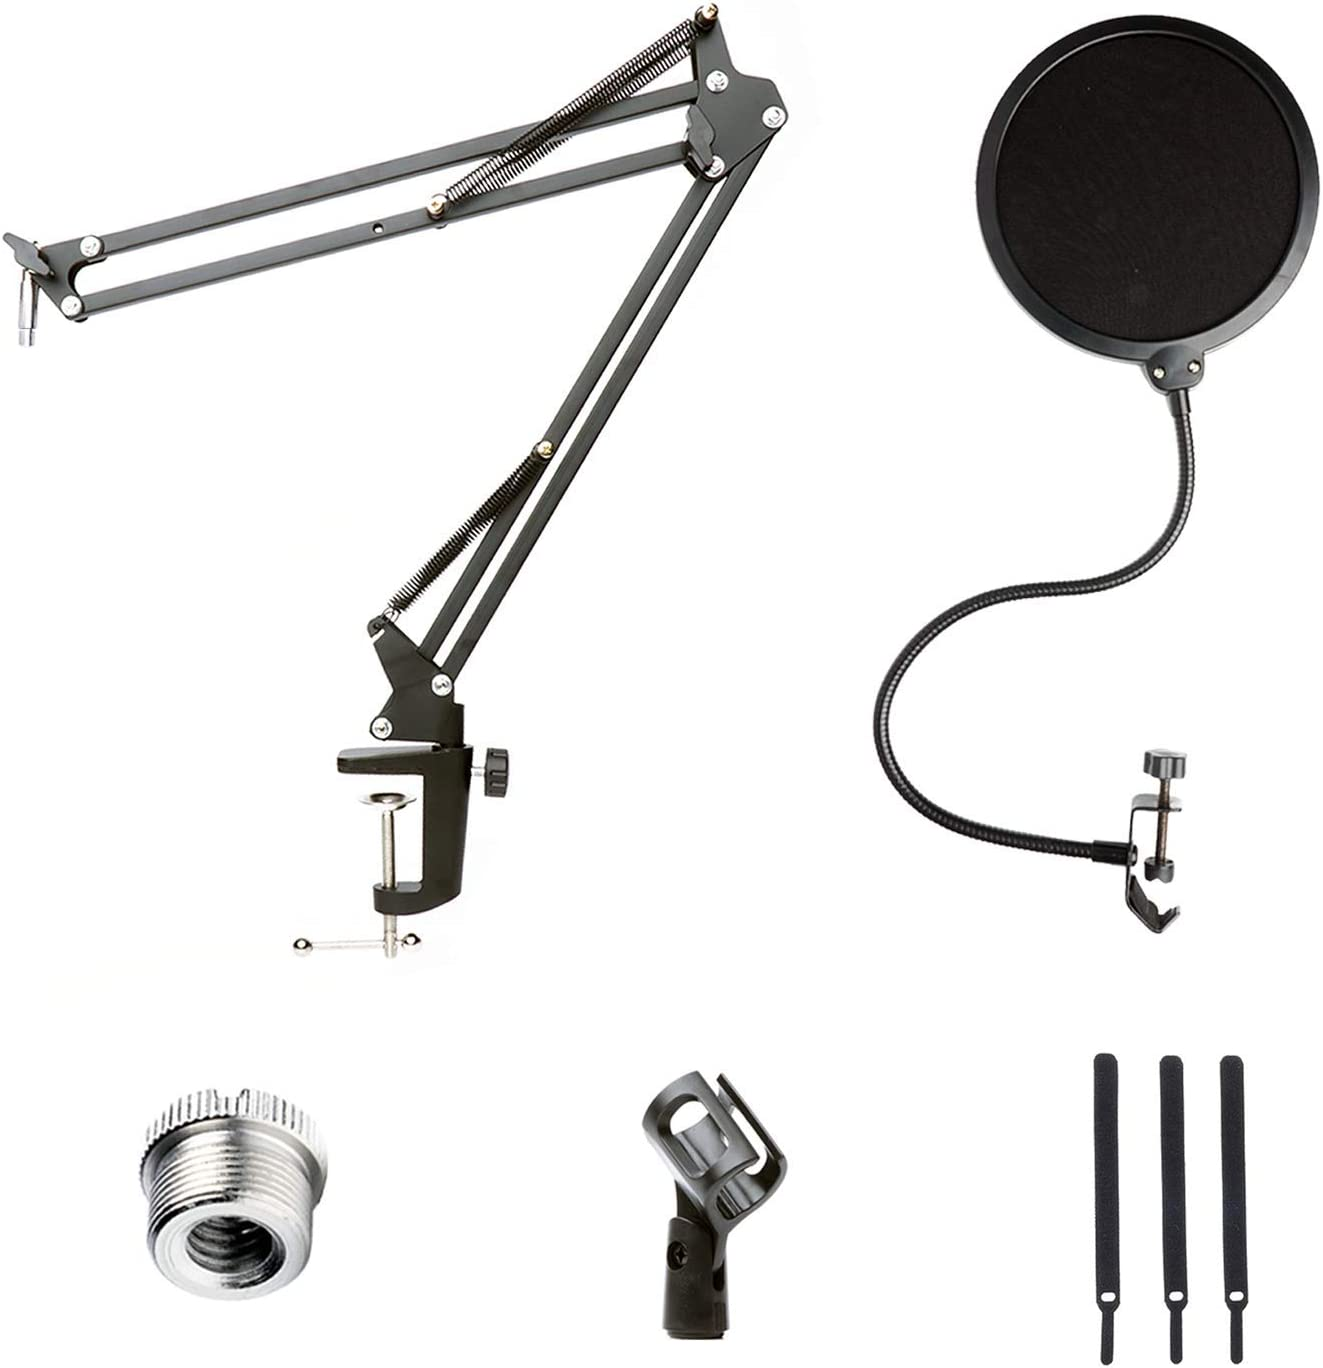 "Movo Podcast Accessories Kit with 26"" Suspension Scissor Arm Desk Mount Microphone Stand with Mic Clip and Dual Layer Nylon Mesh Gooseneck Pop Filter. Accessory Pack for YouTube, Gaming, Streaming"